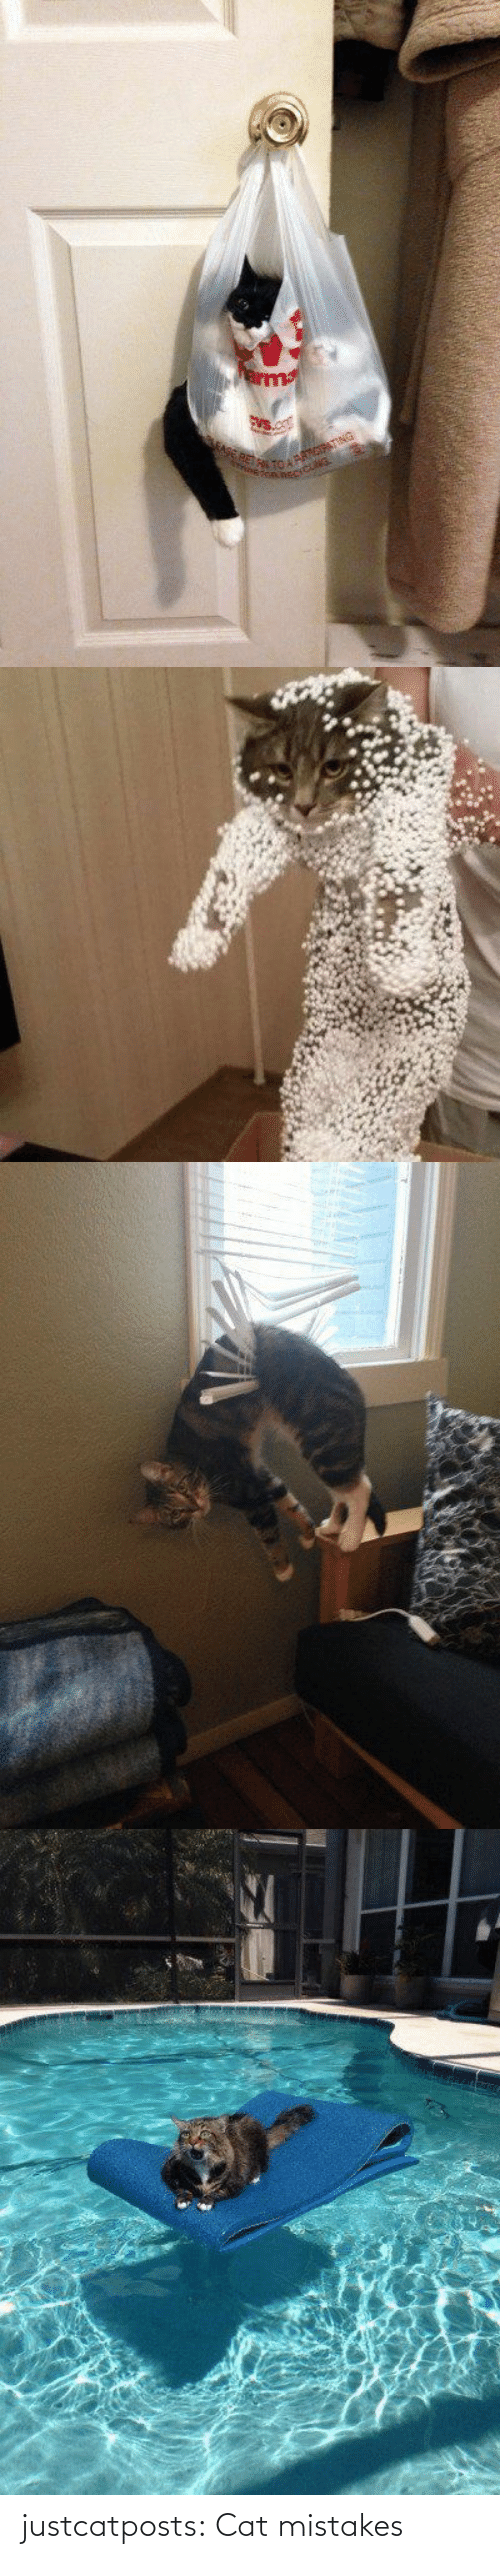 cat: justcatposts:  Cat mistakes